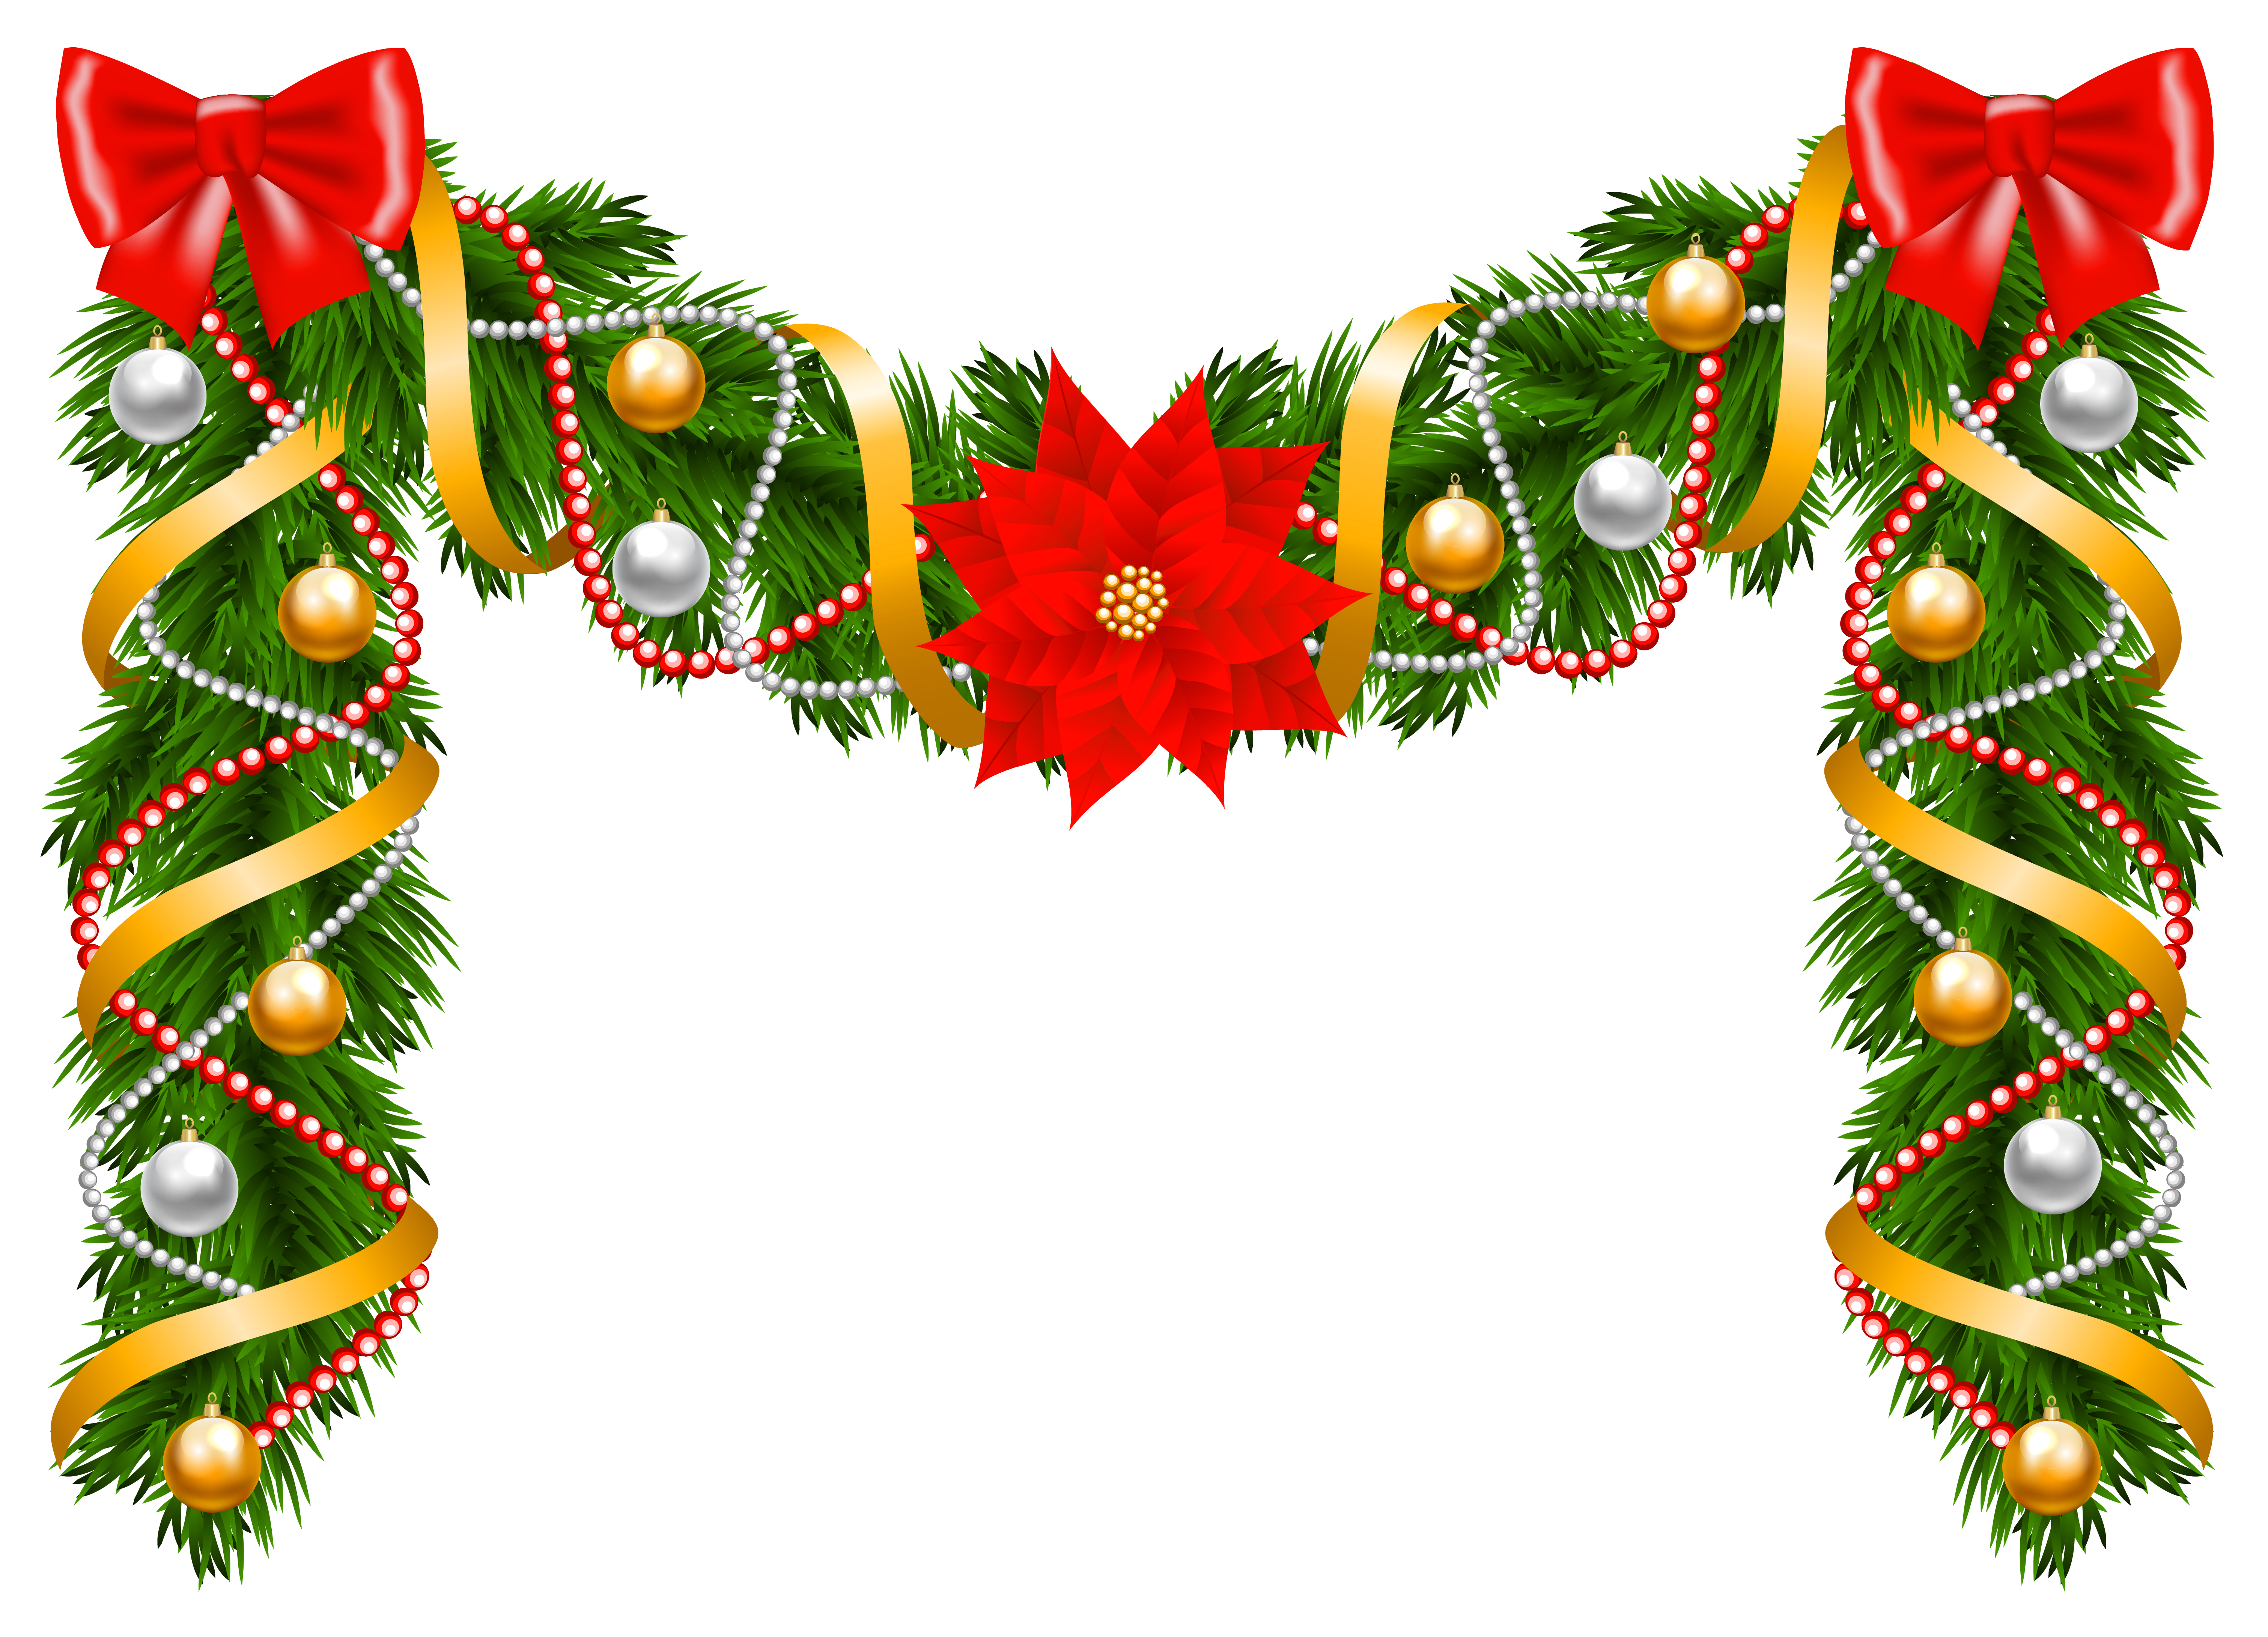 Free Garland Cliparts, Download Free Clip Art, Free Clip Art.